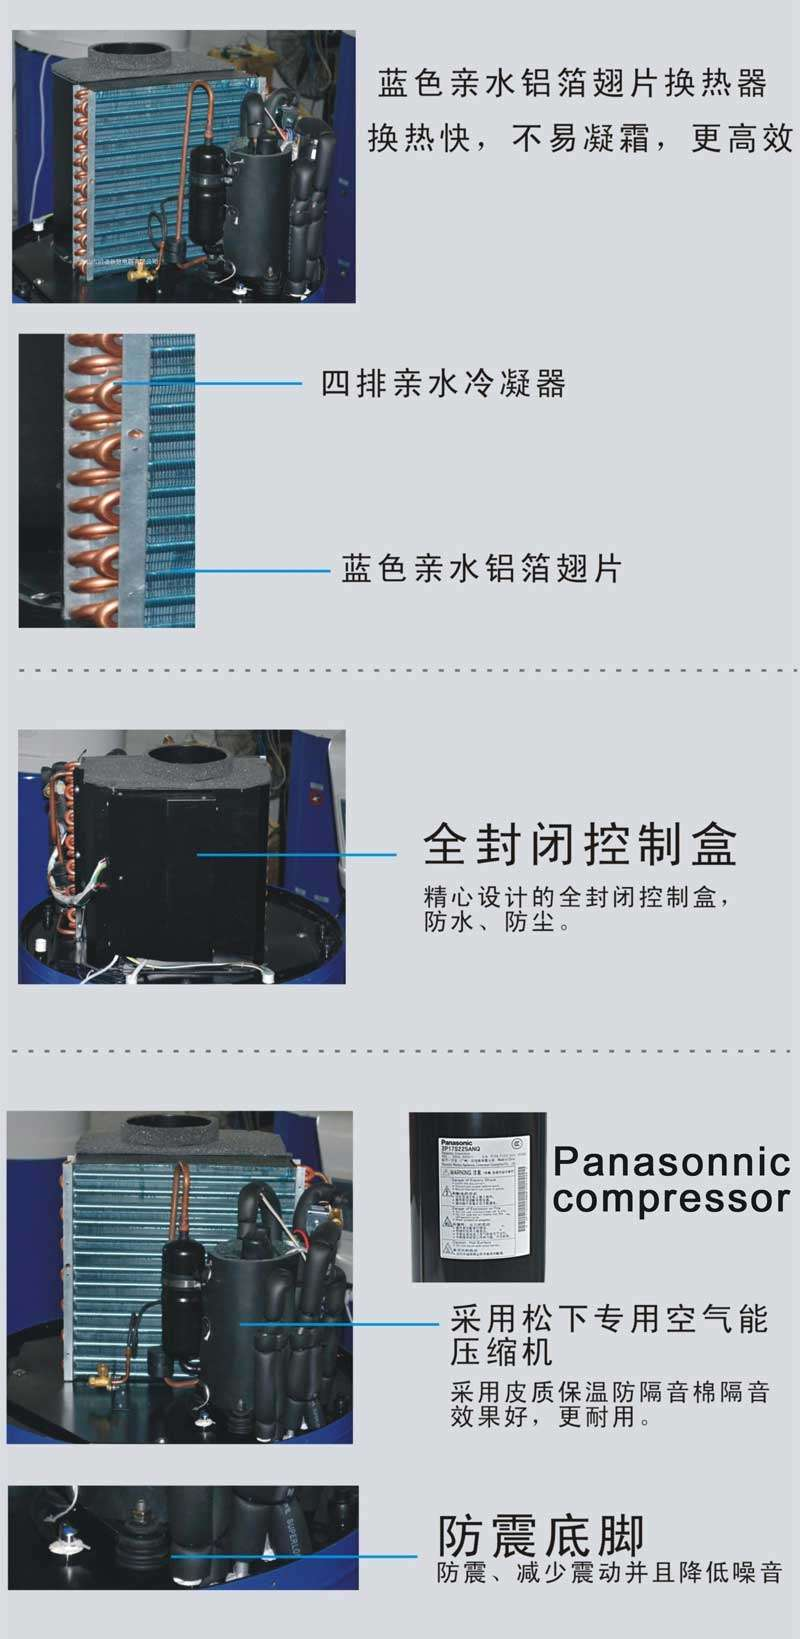 with panasonnic compressor